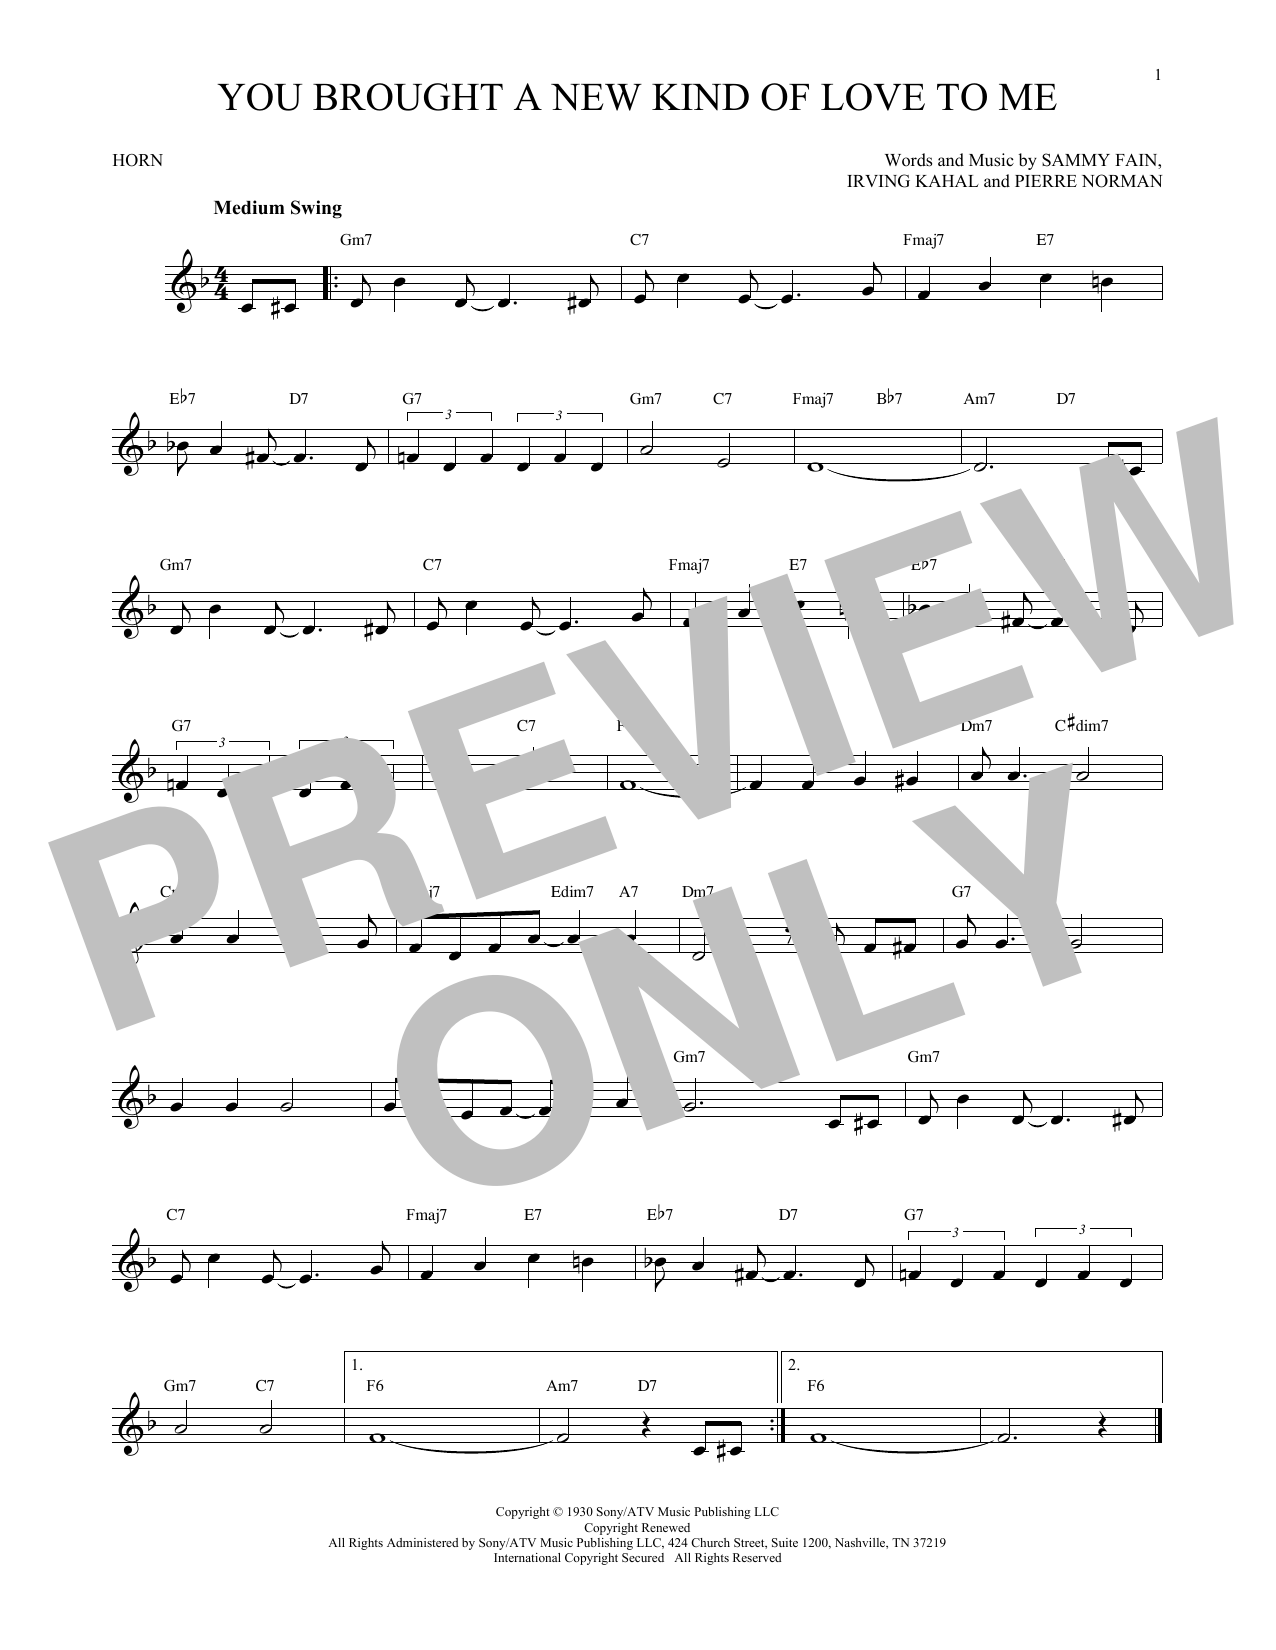 You Brought A New Kind Of Love To Me (French Horn Solo)